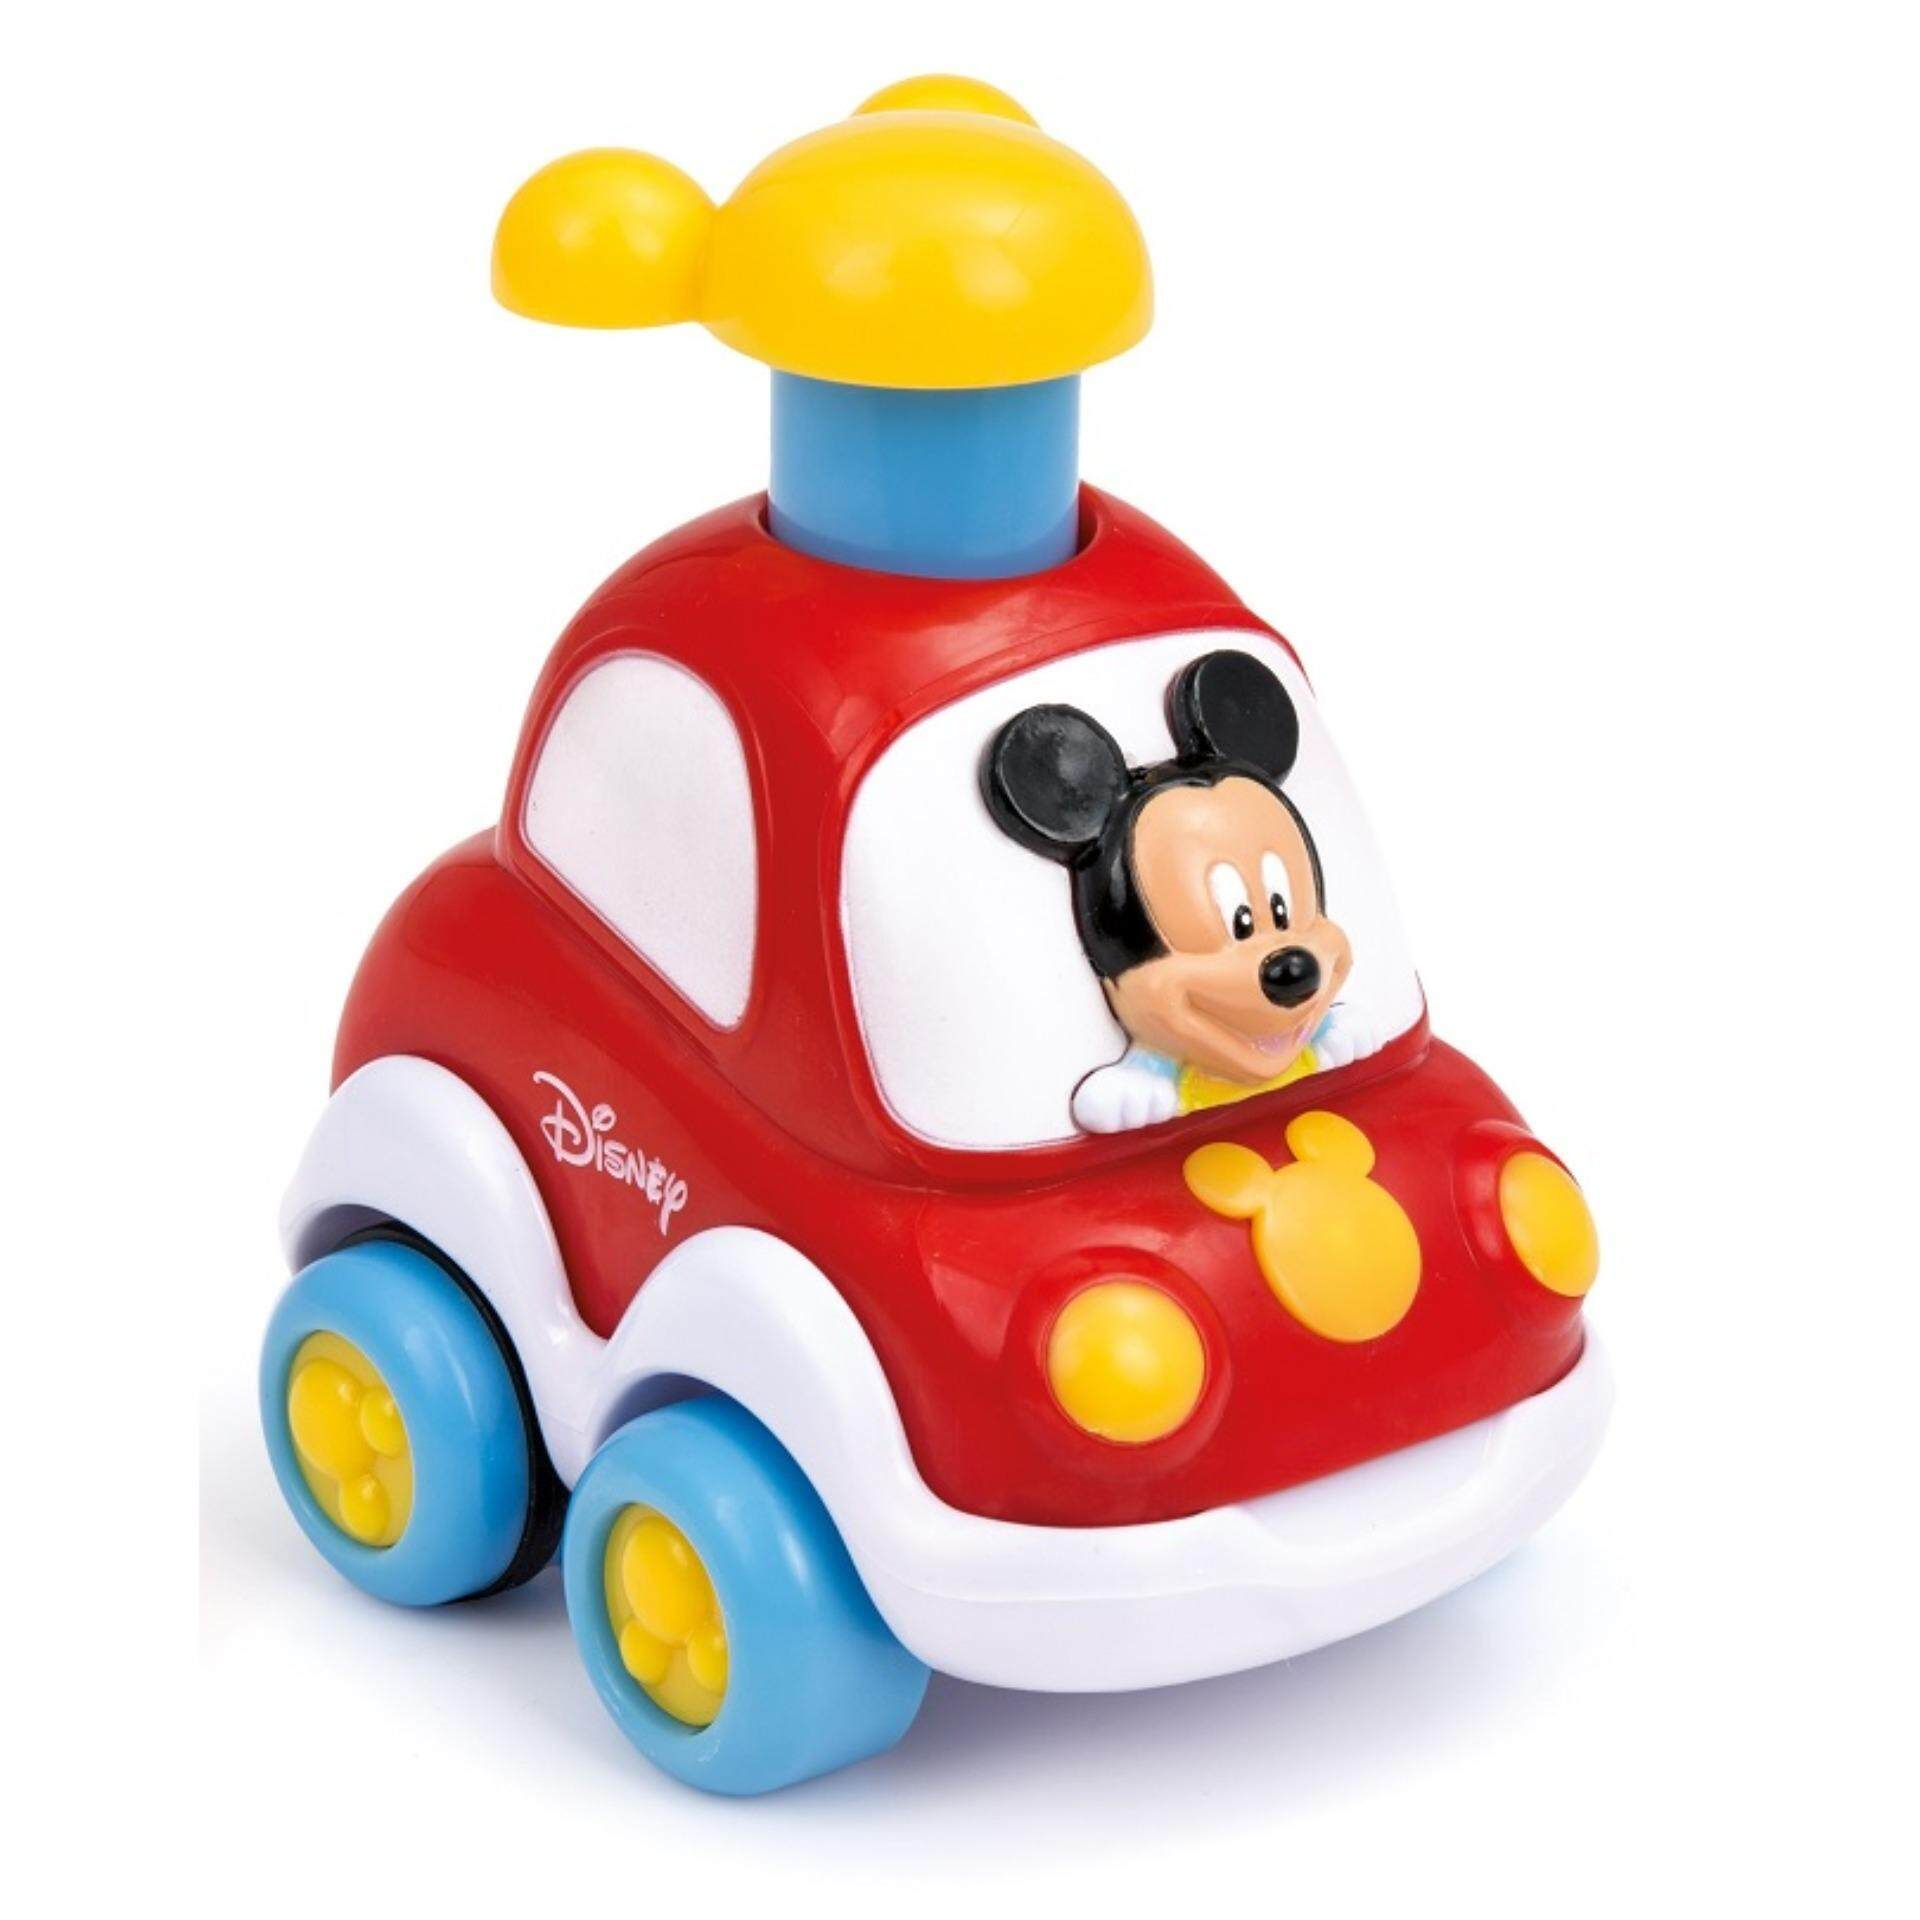 Disney Baby Press & Go Cars Toys - Mickey baby toys